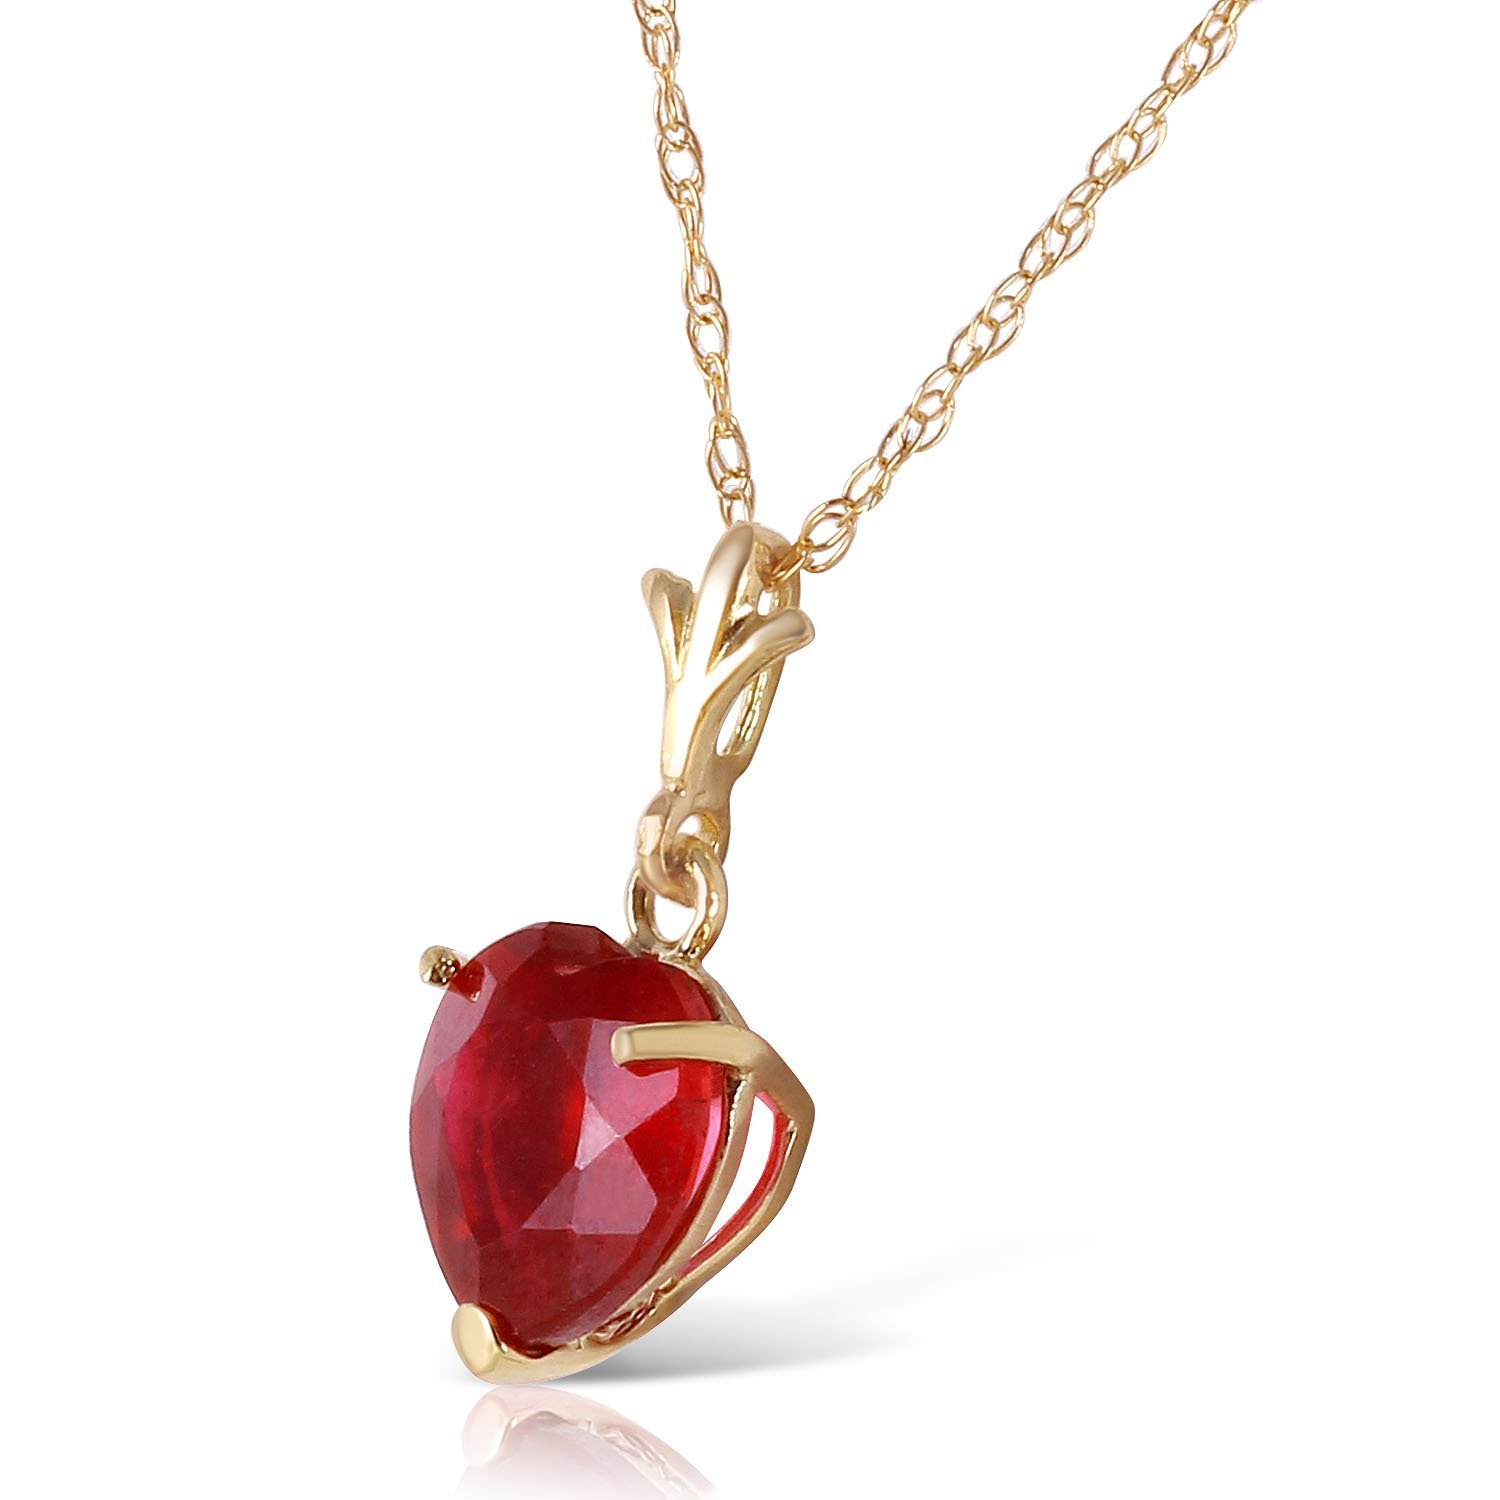 Galaxy Gold 1.45 Carat 14k Solid Gold Necklace with Natural Heart-Shaped Ruby Galaxy Gold Products Inc 4160Y/_16